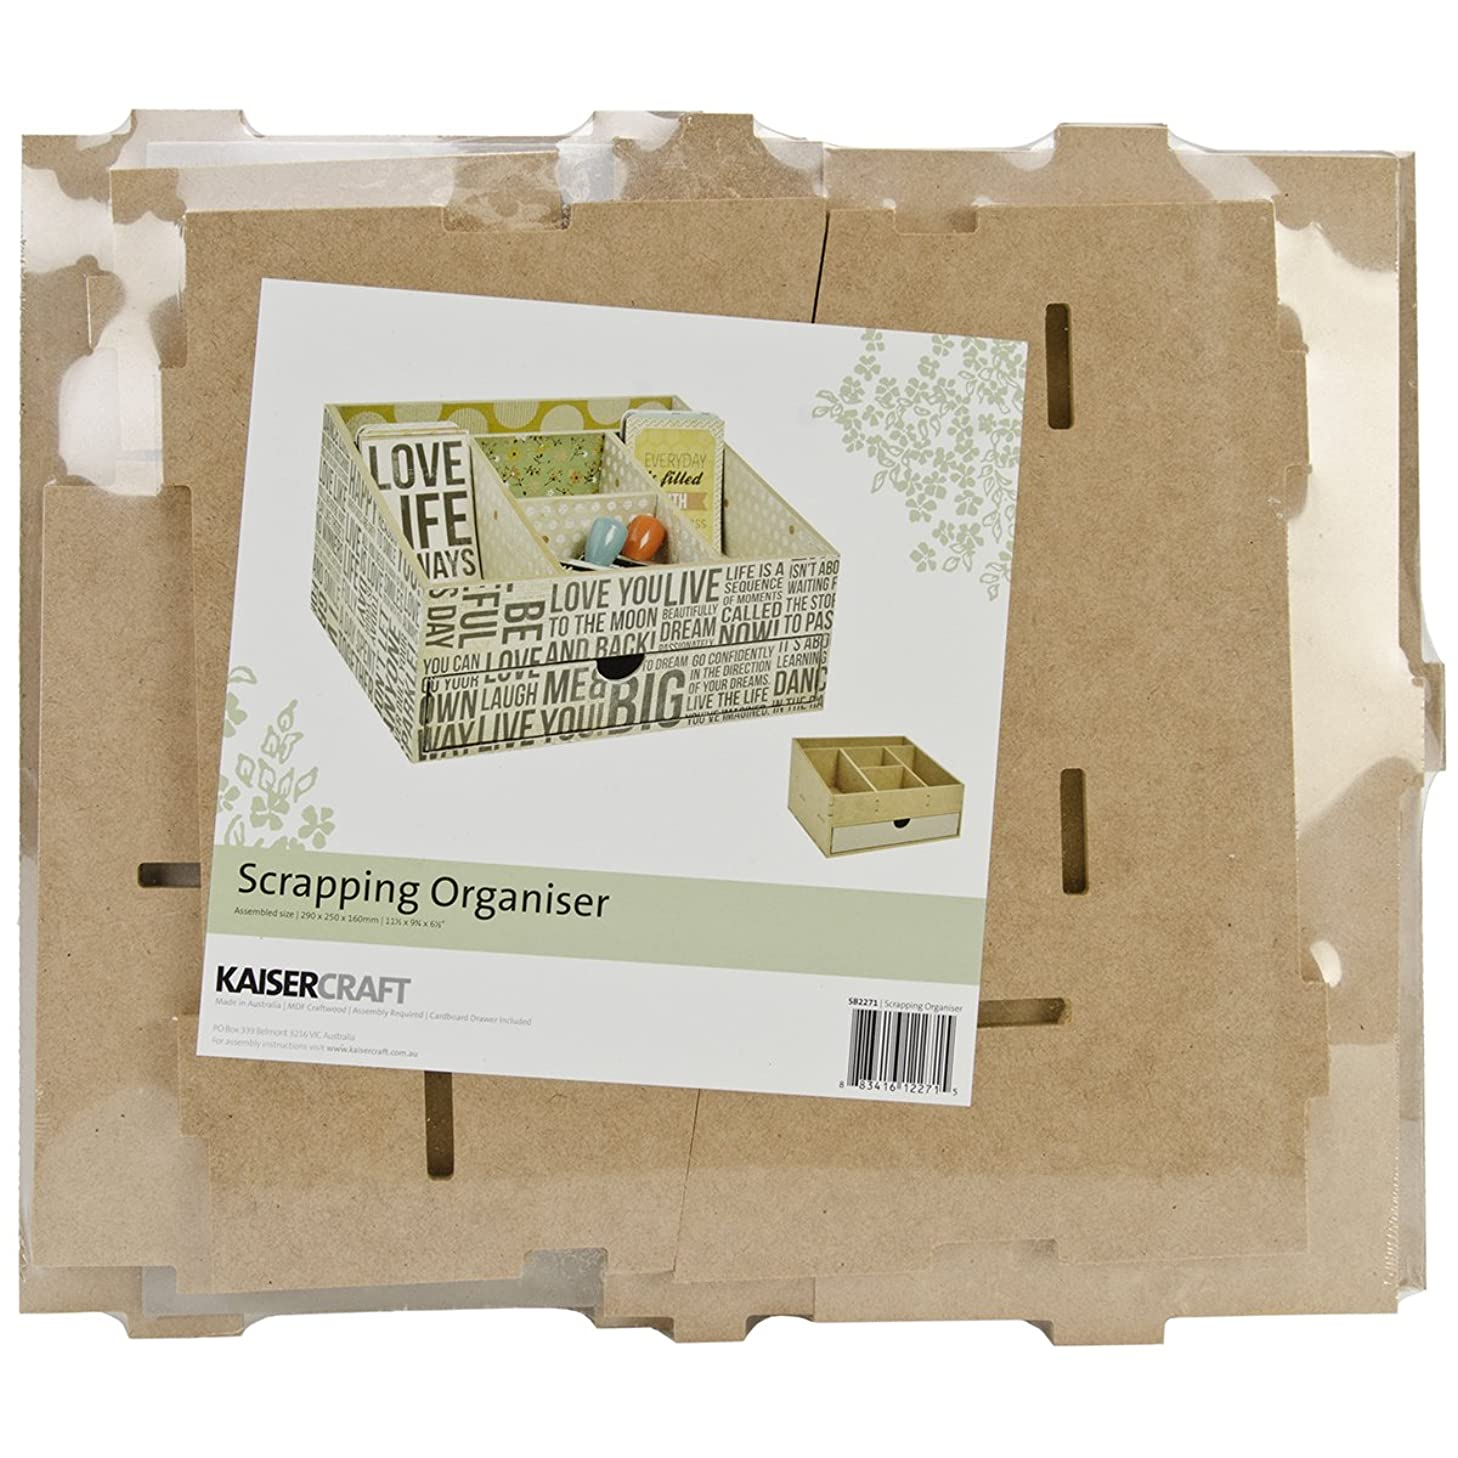 Kaisercraft SB2271 Beyond The Page MDF Scrapping Organizer, 11.5 by 9.75 by 6.5-Inch